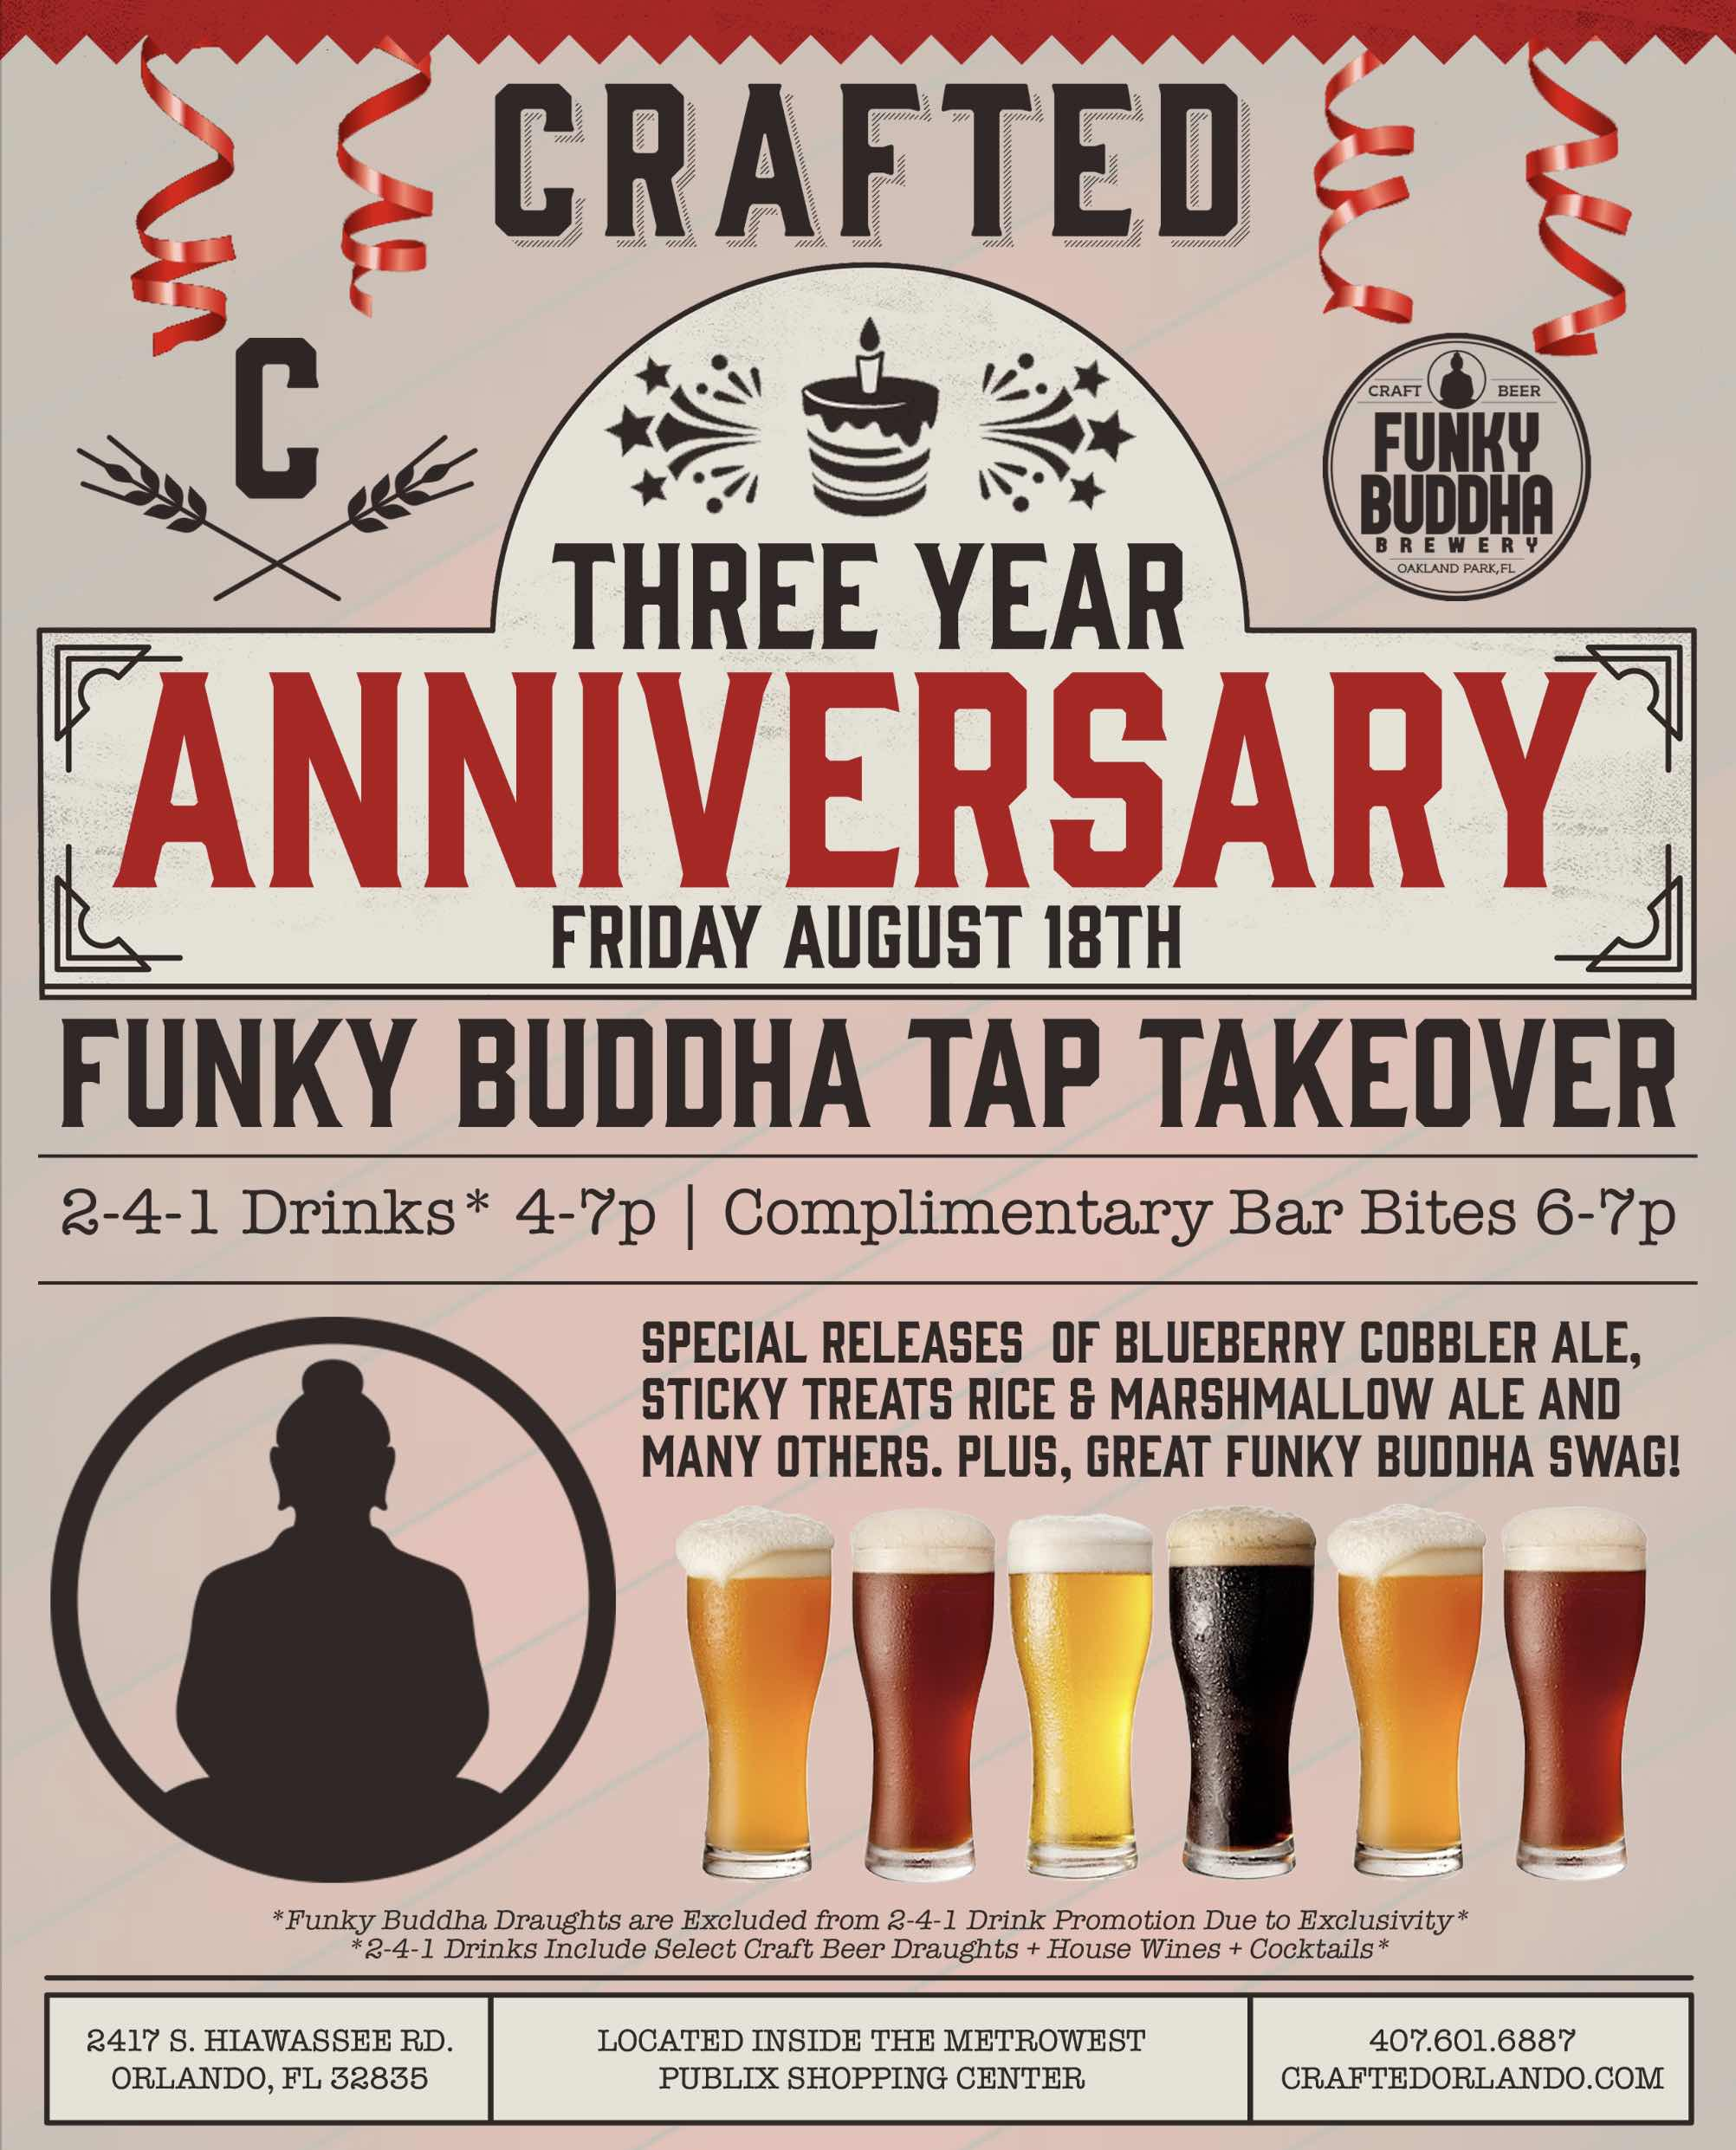 Crafted 3 Year Anniversary Funky Buddha Tap Takeover